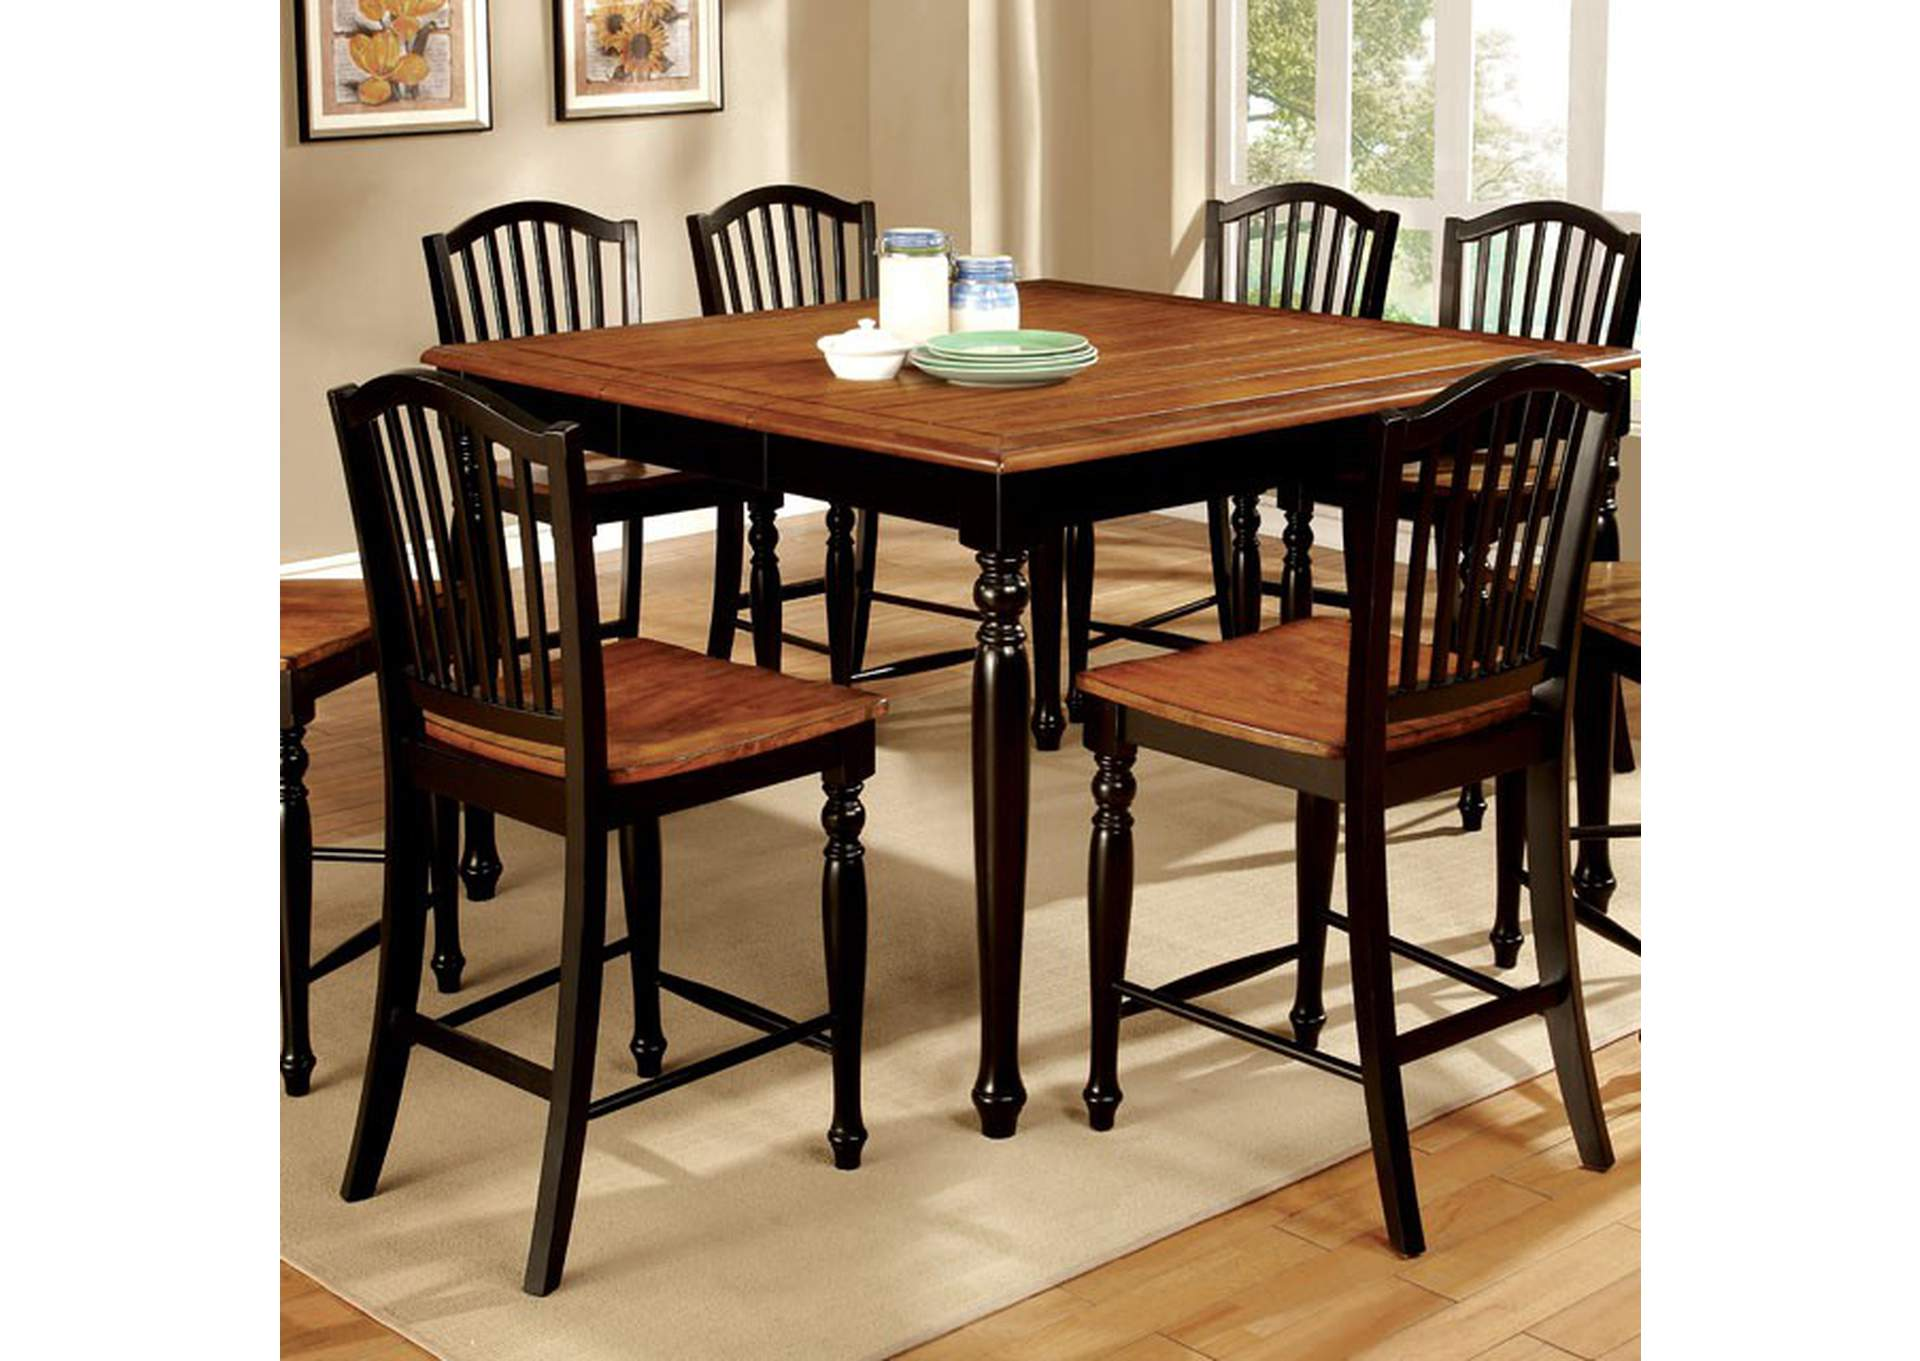 Mayville Counter Height Table,Furniture of America